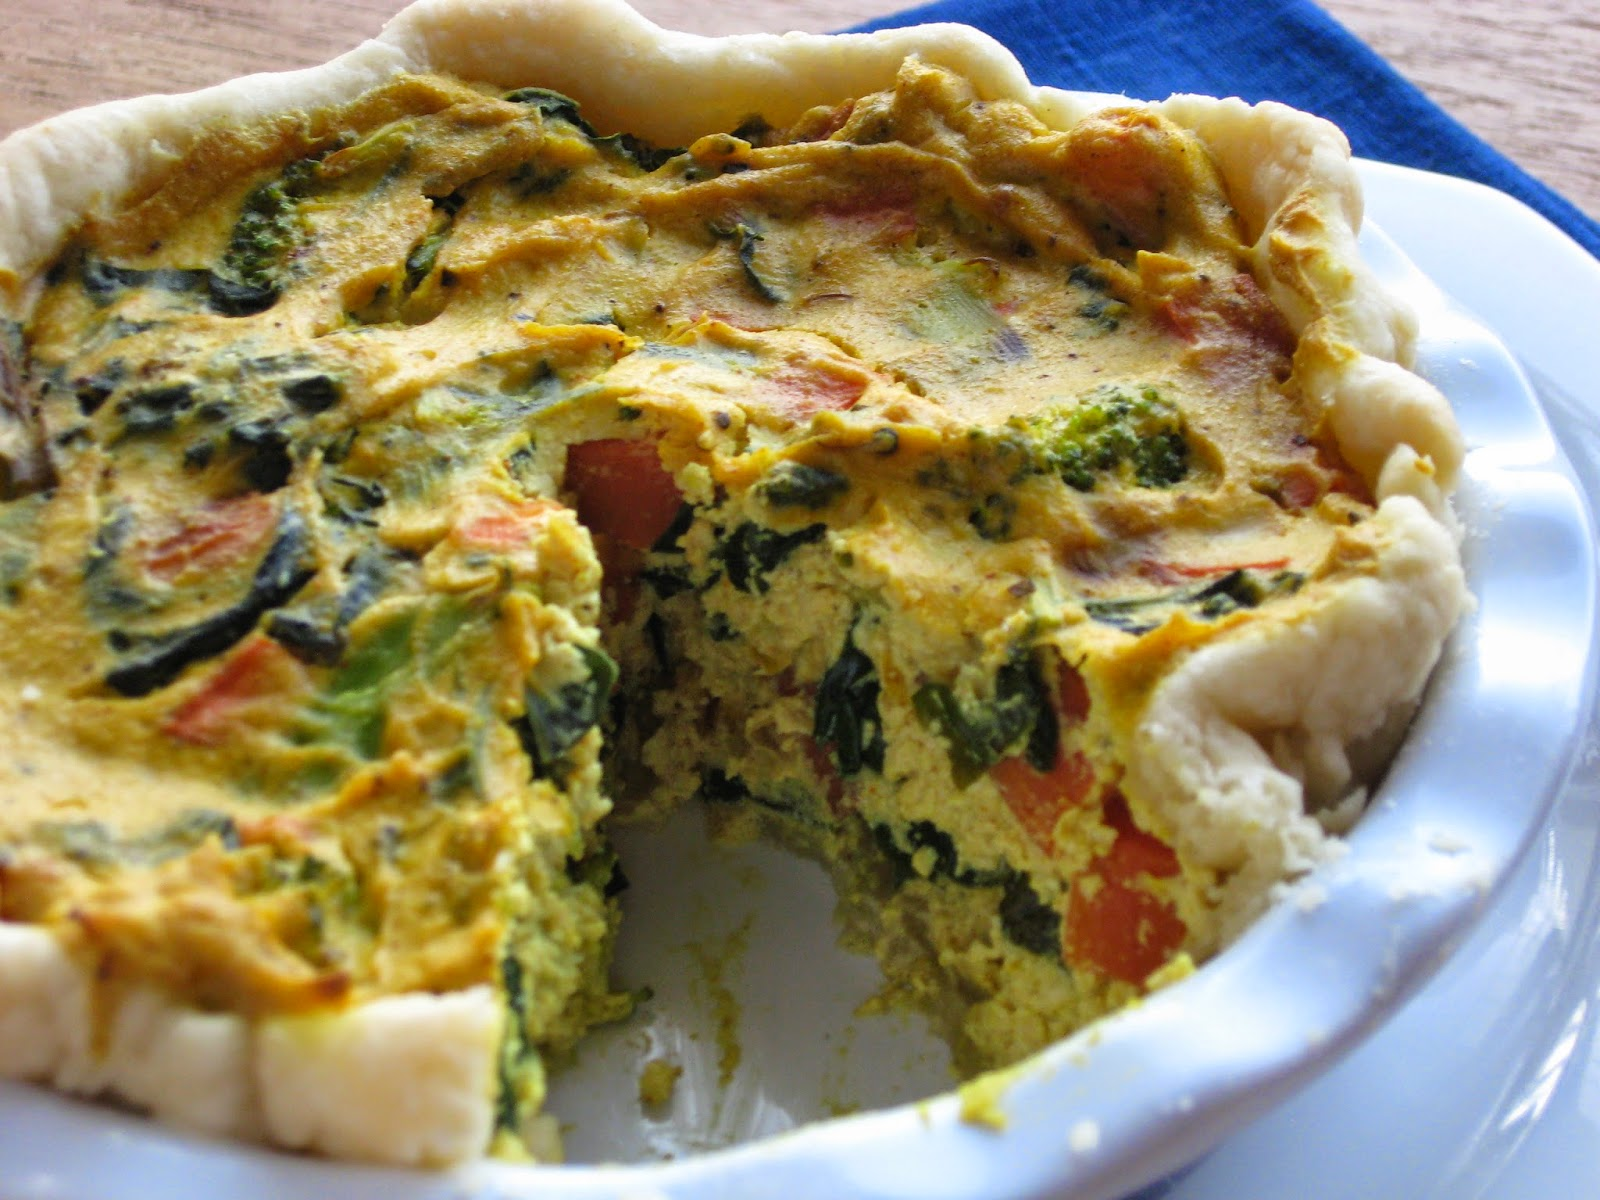 VeganForOne Broccoli Quiche for One